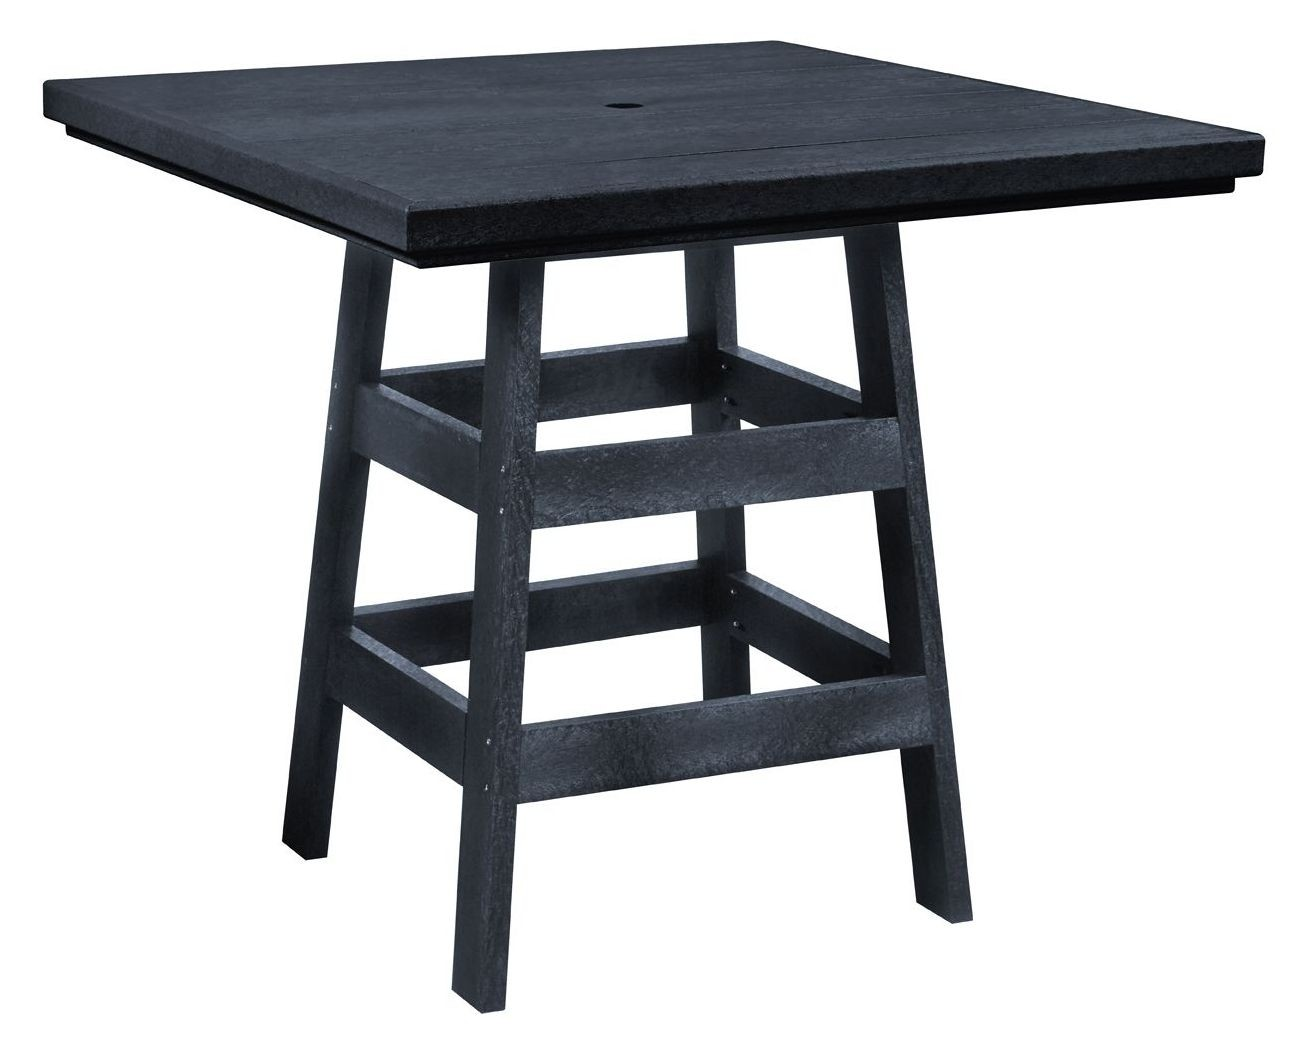 Generation Black 42quot Square Pub Table from CR Plastic T13  : t1314 from colemanfurniture.com size 1303 x 1055 jpeg 112kB